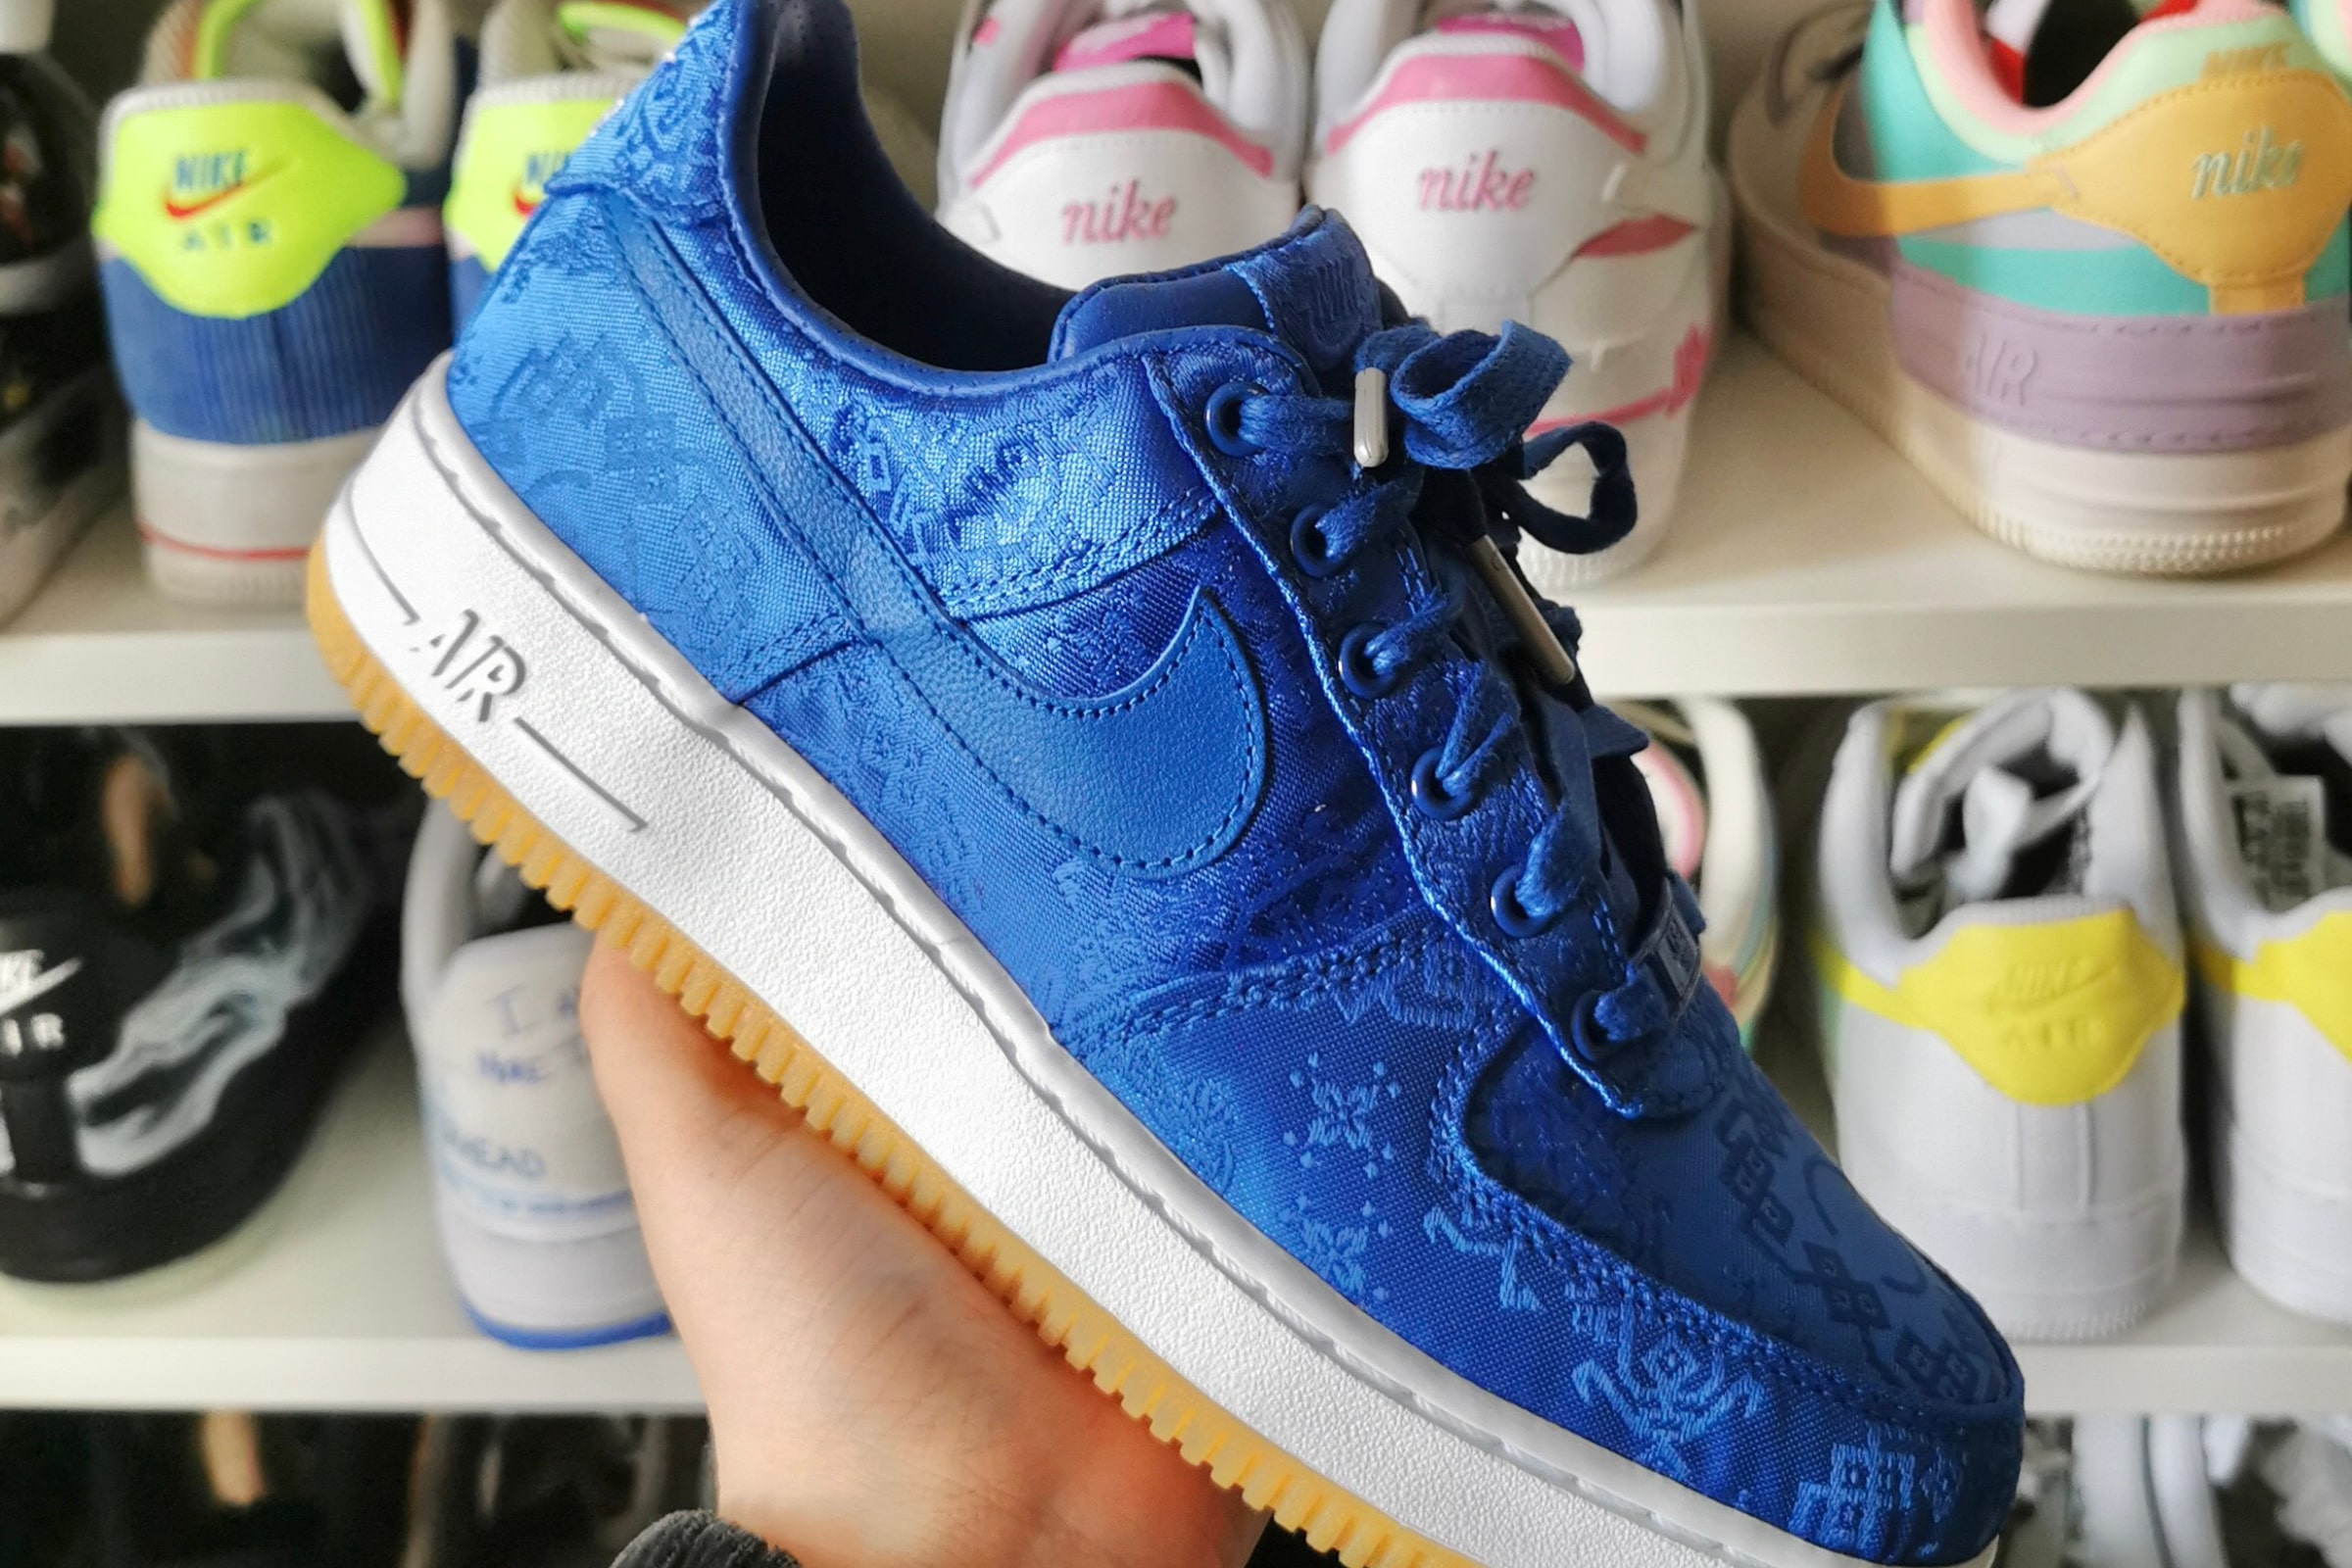 Nike Air Force 1 x CLOT 'Blue Silk' - 2019